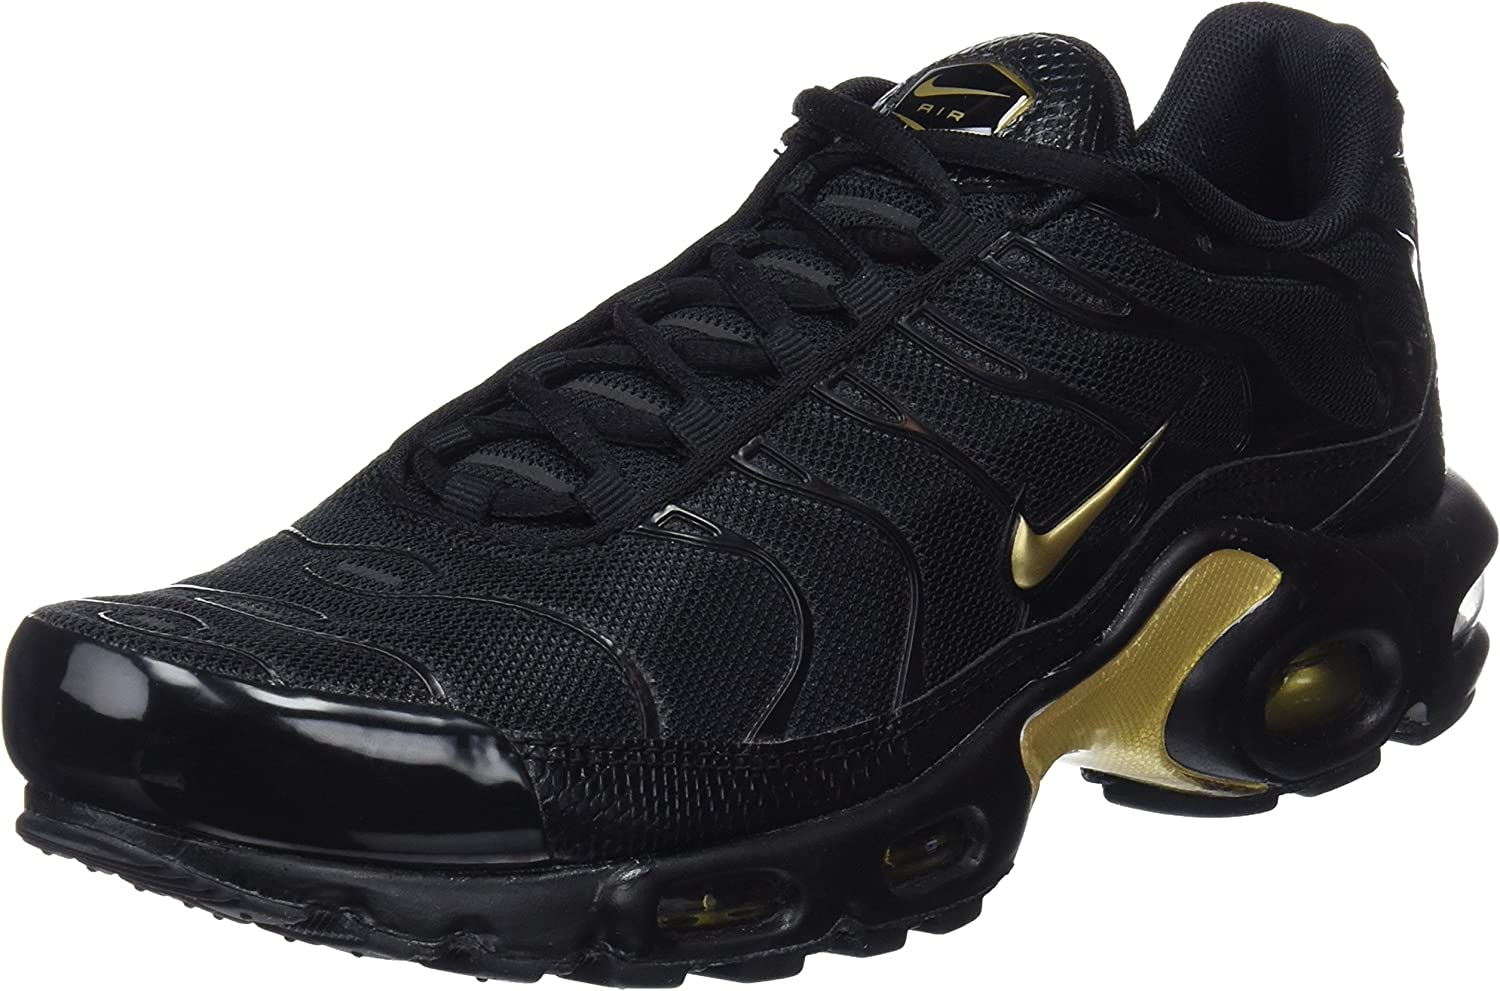 Nike Air Max Plus TN Sneaker Running Shoes RARITY blackgold